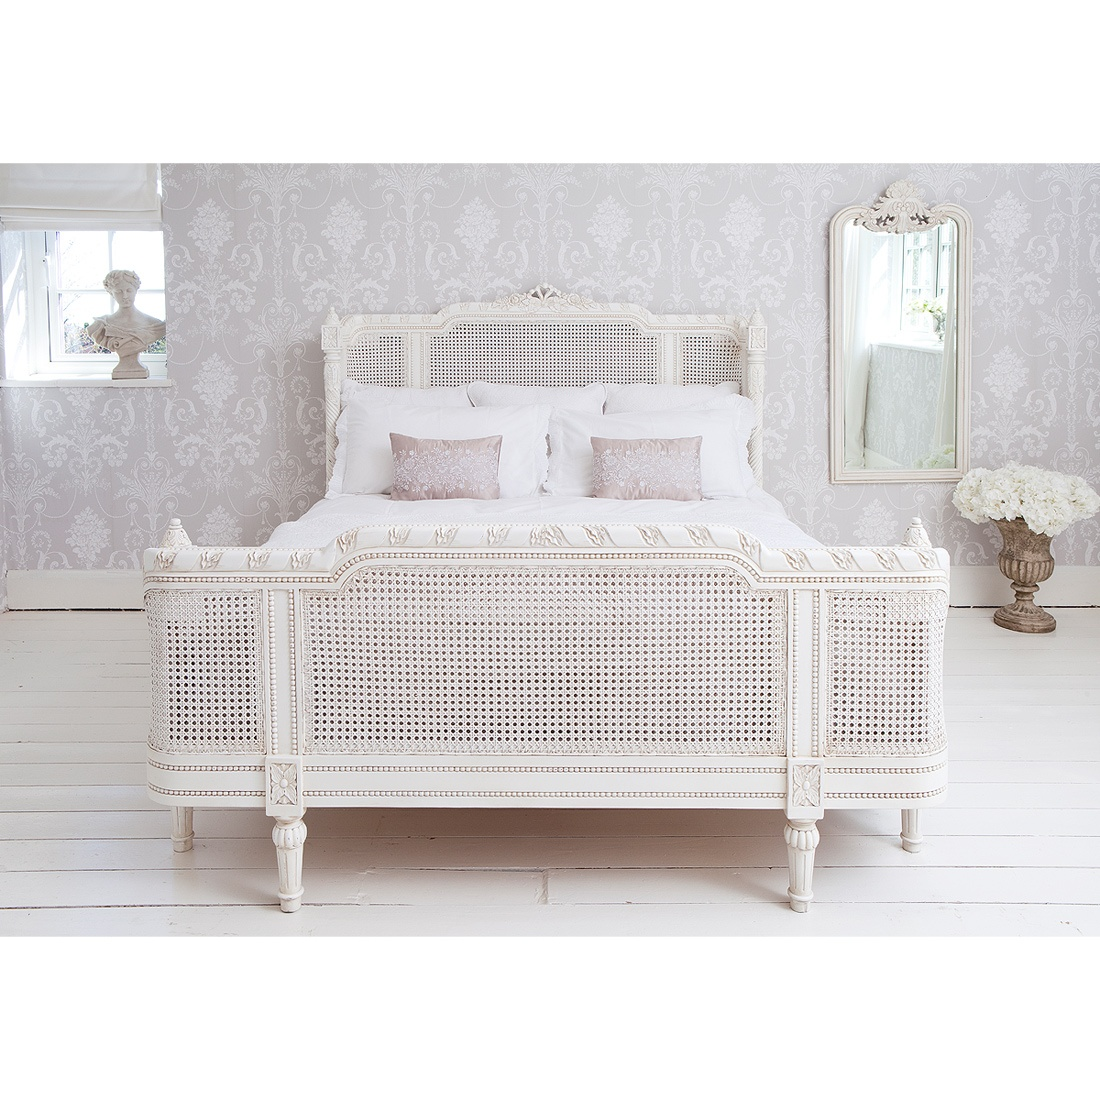 Provencal Lit Lit Painted French Bed French Bedroom Company